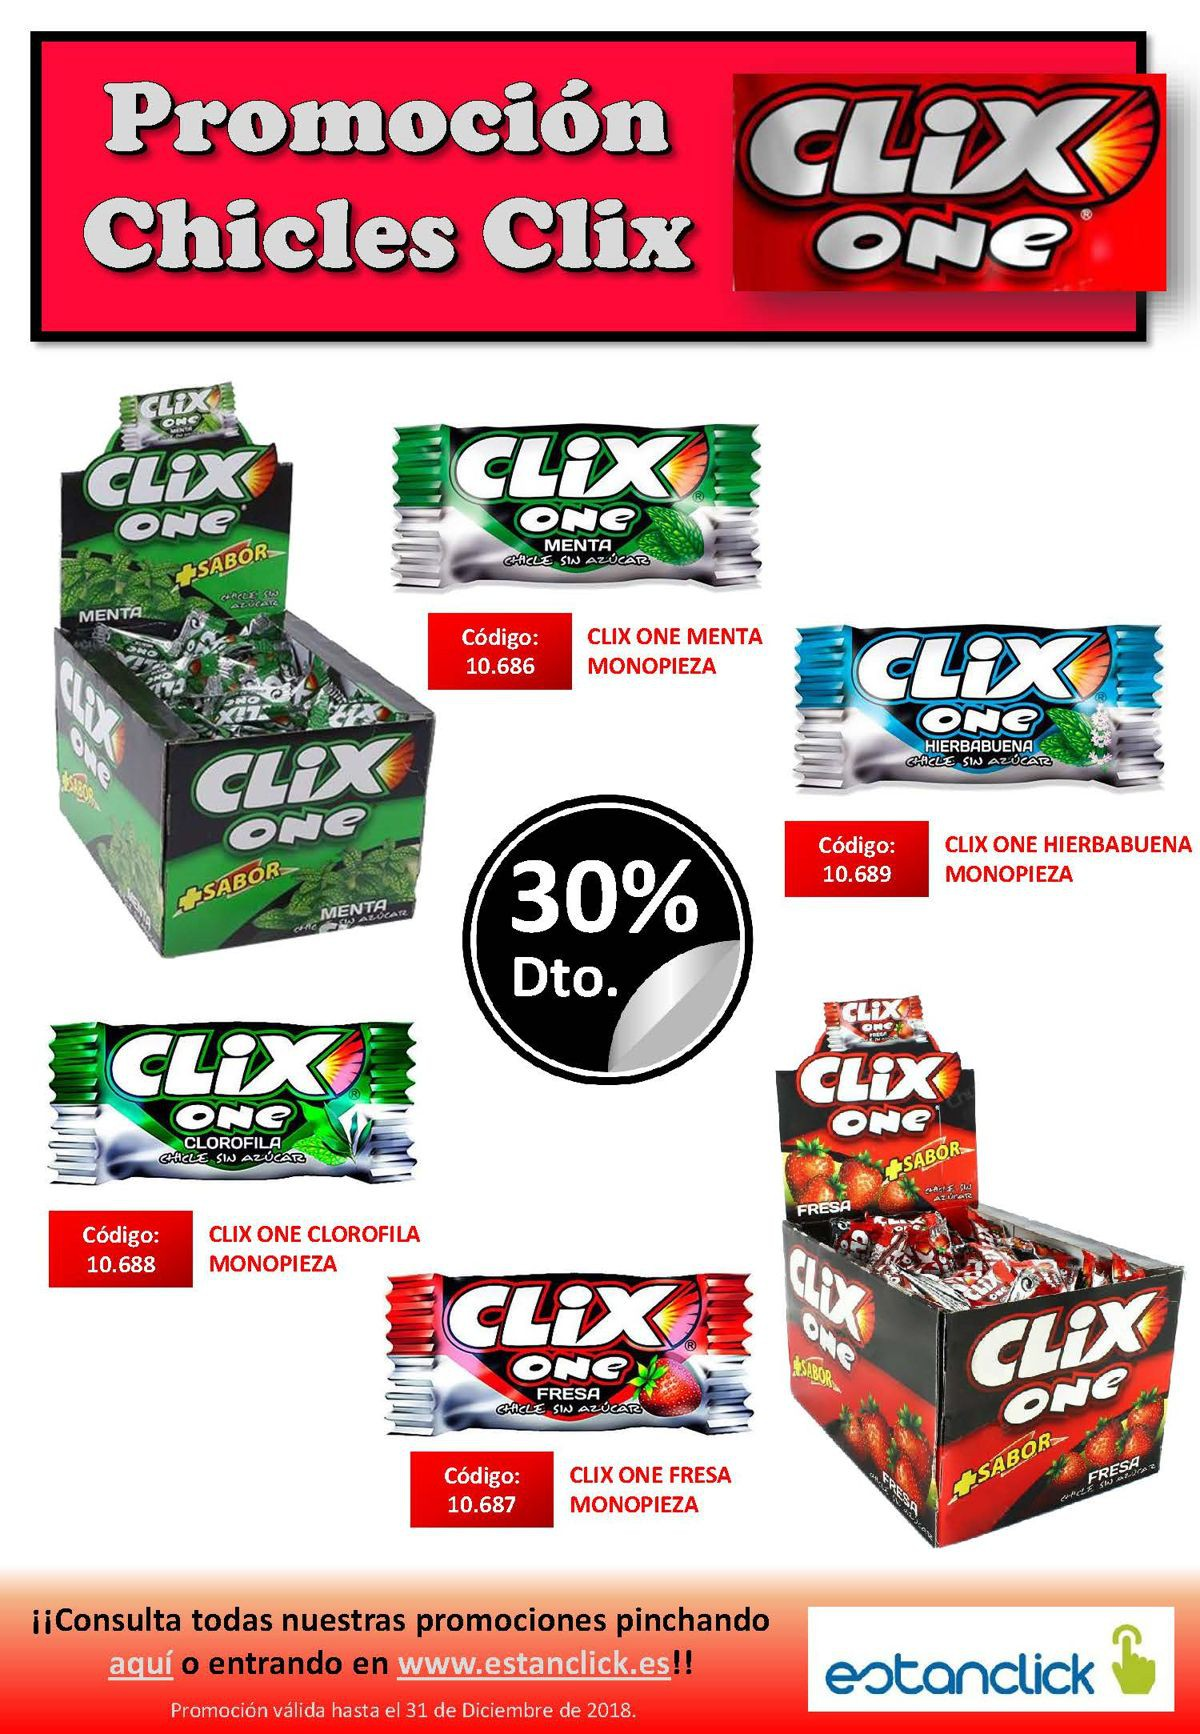 Promo Clix One